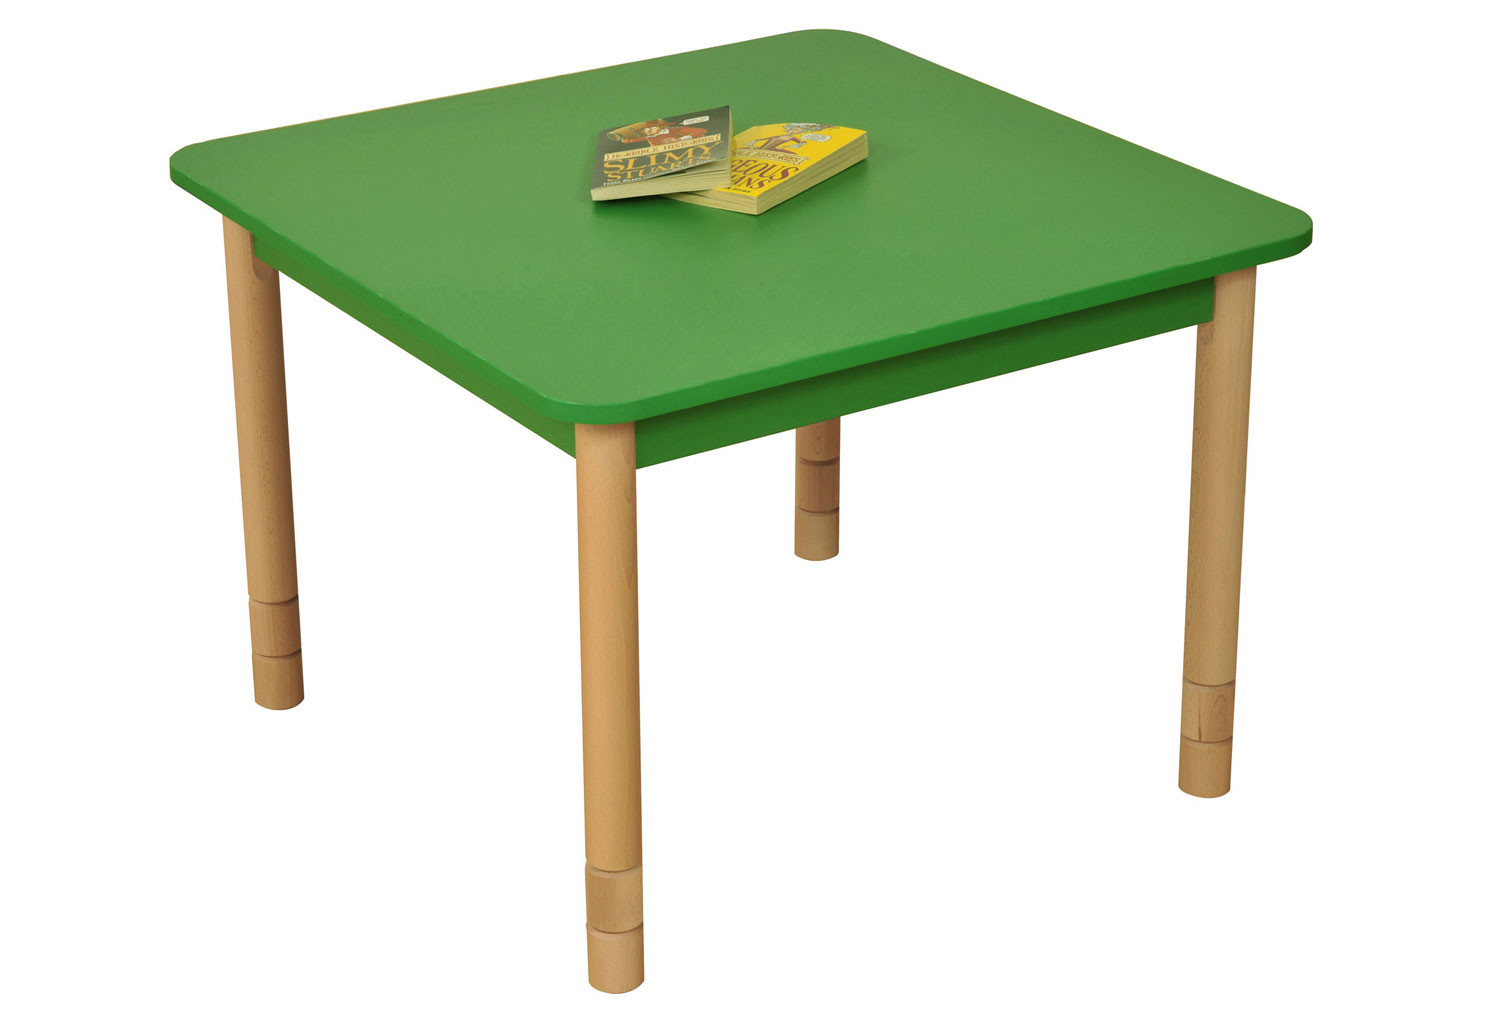 Beechwood Height Adjustable Square Table